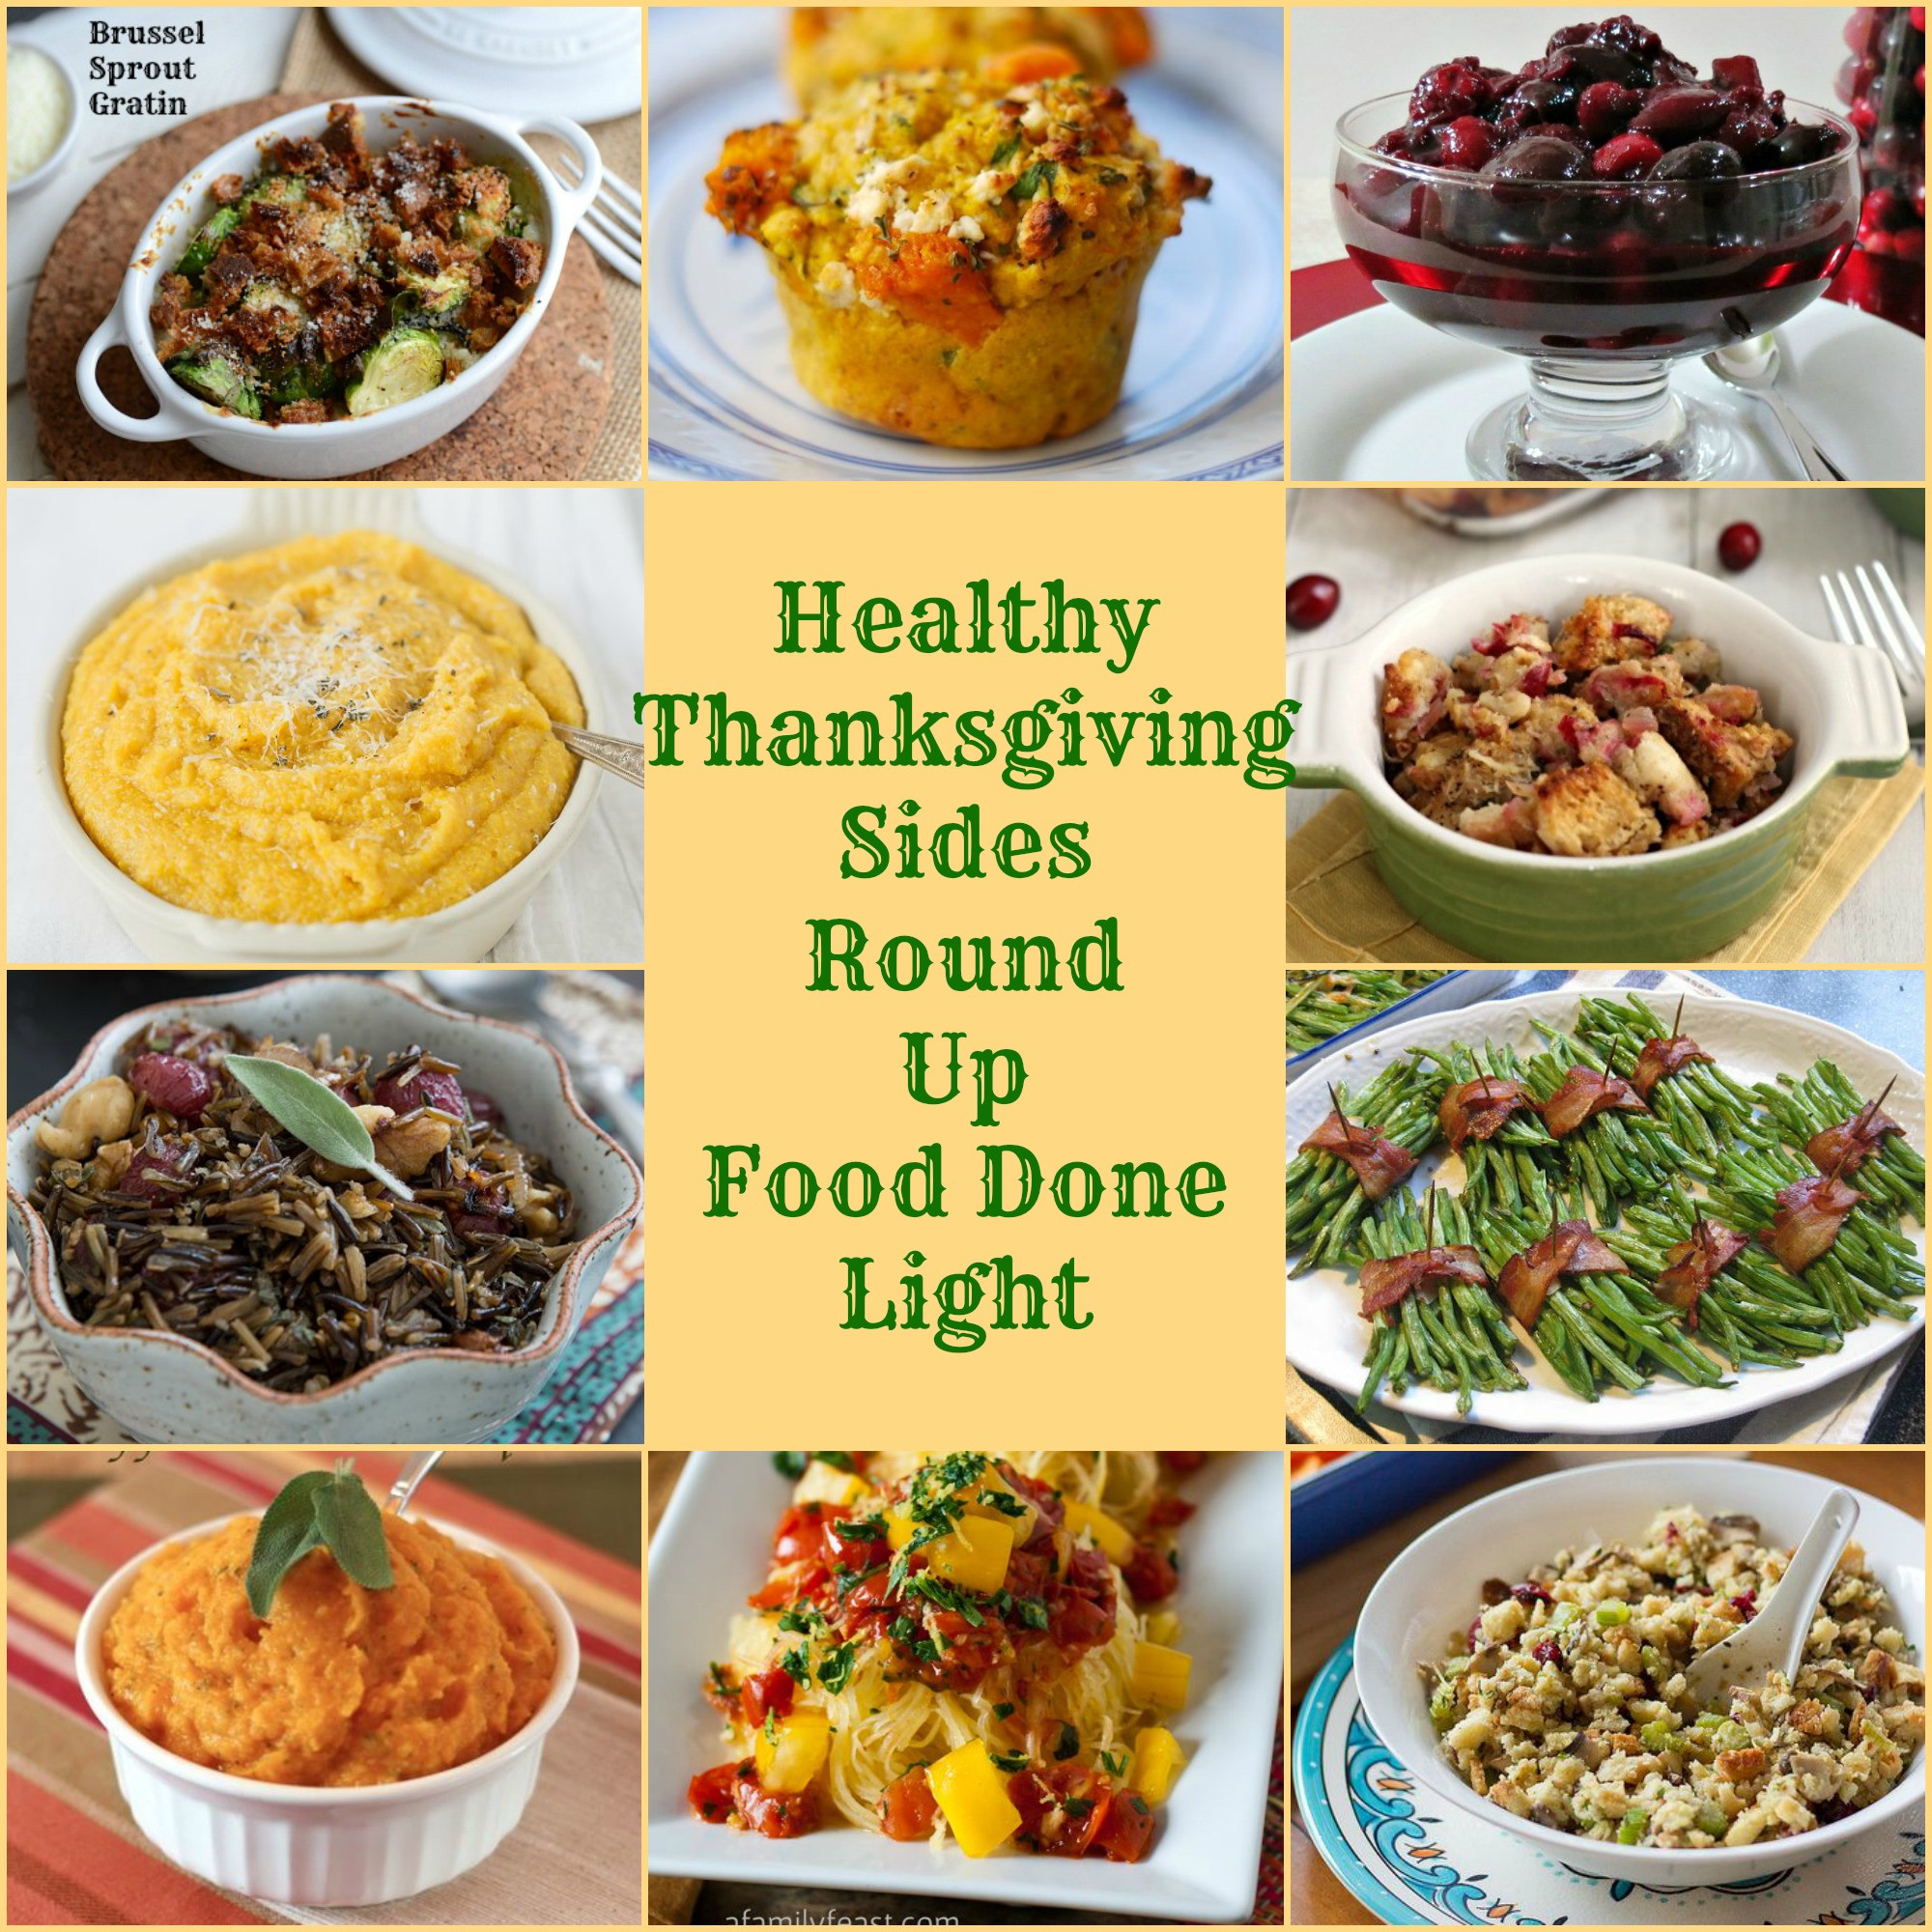 Healthy Side Dishes For Turkey  Healthy Thanksgiving Sides Recipe Round Up Food Done Light